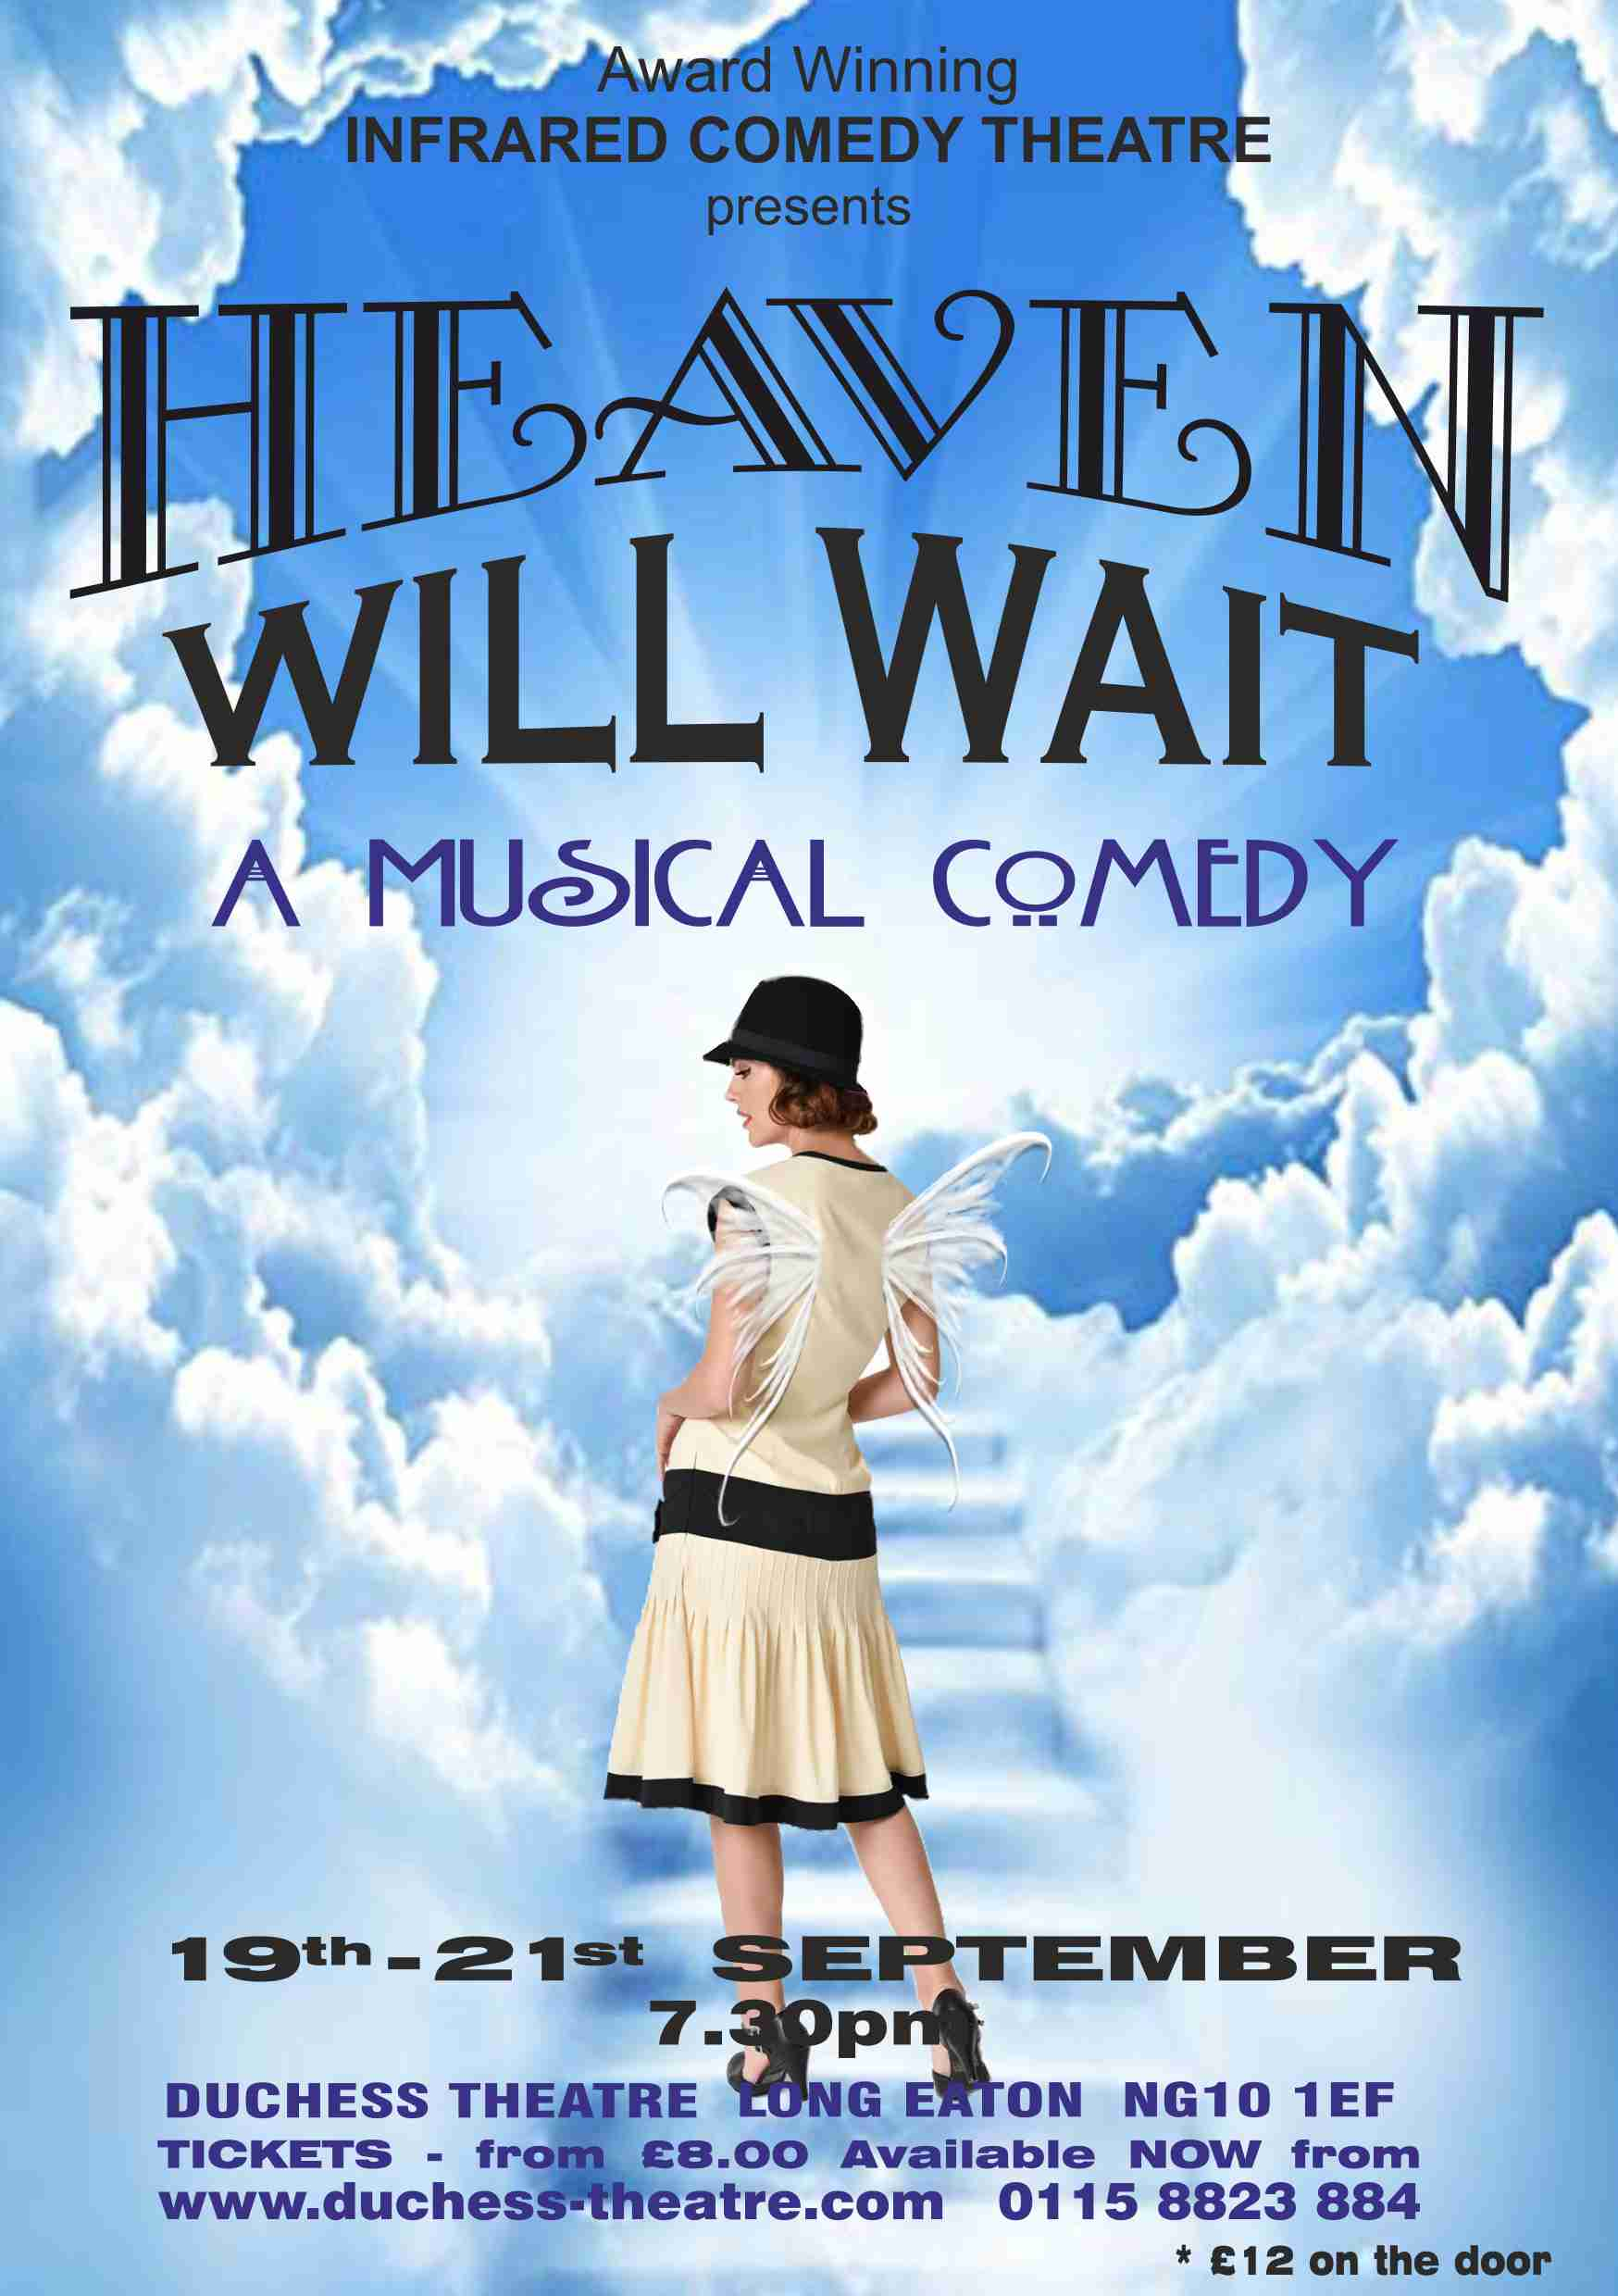 HEAVEN WILL WAIT - Infrared Comedy Theatre banner image